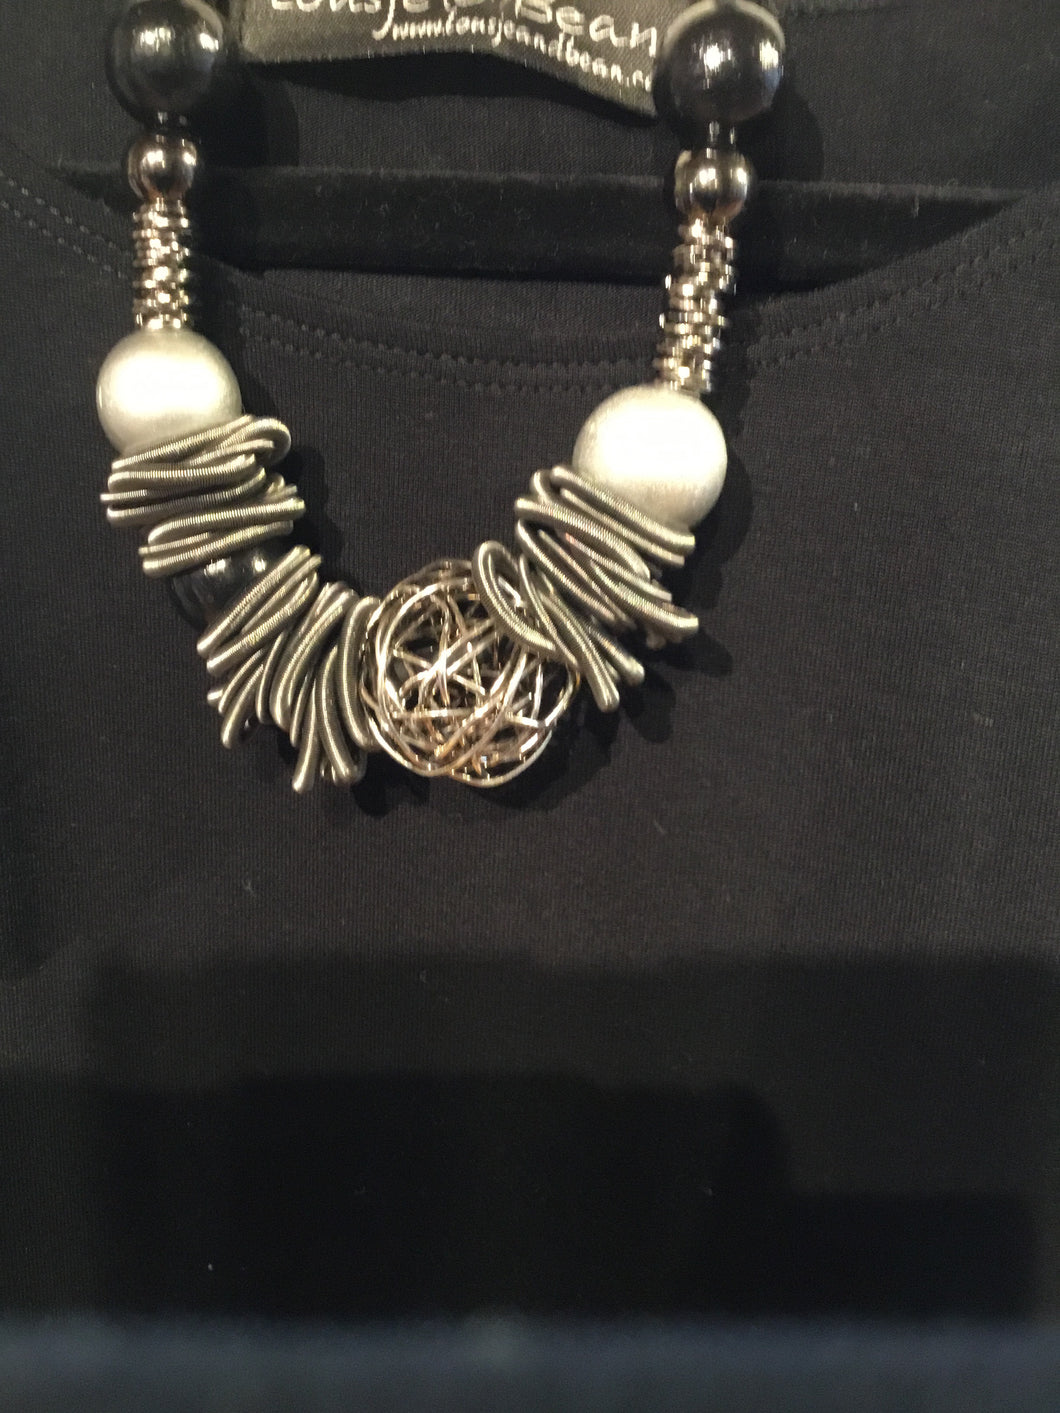 L&B-Necklace $65